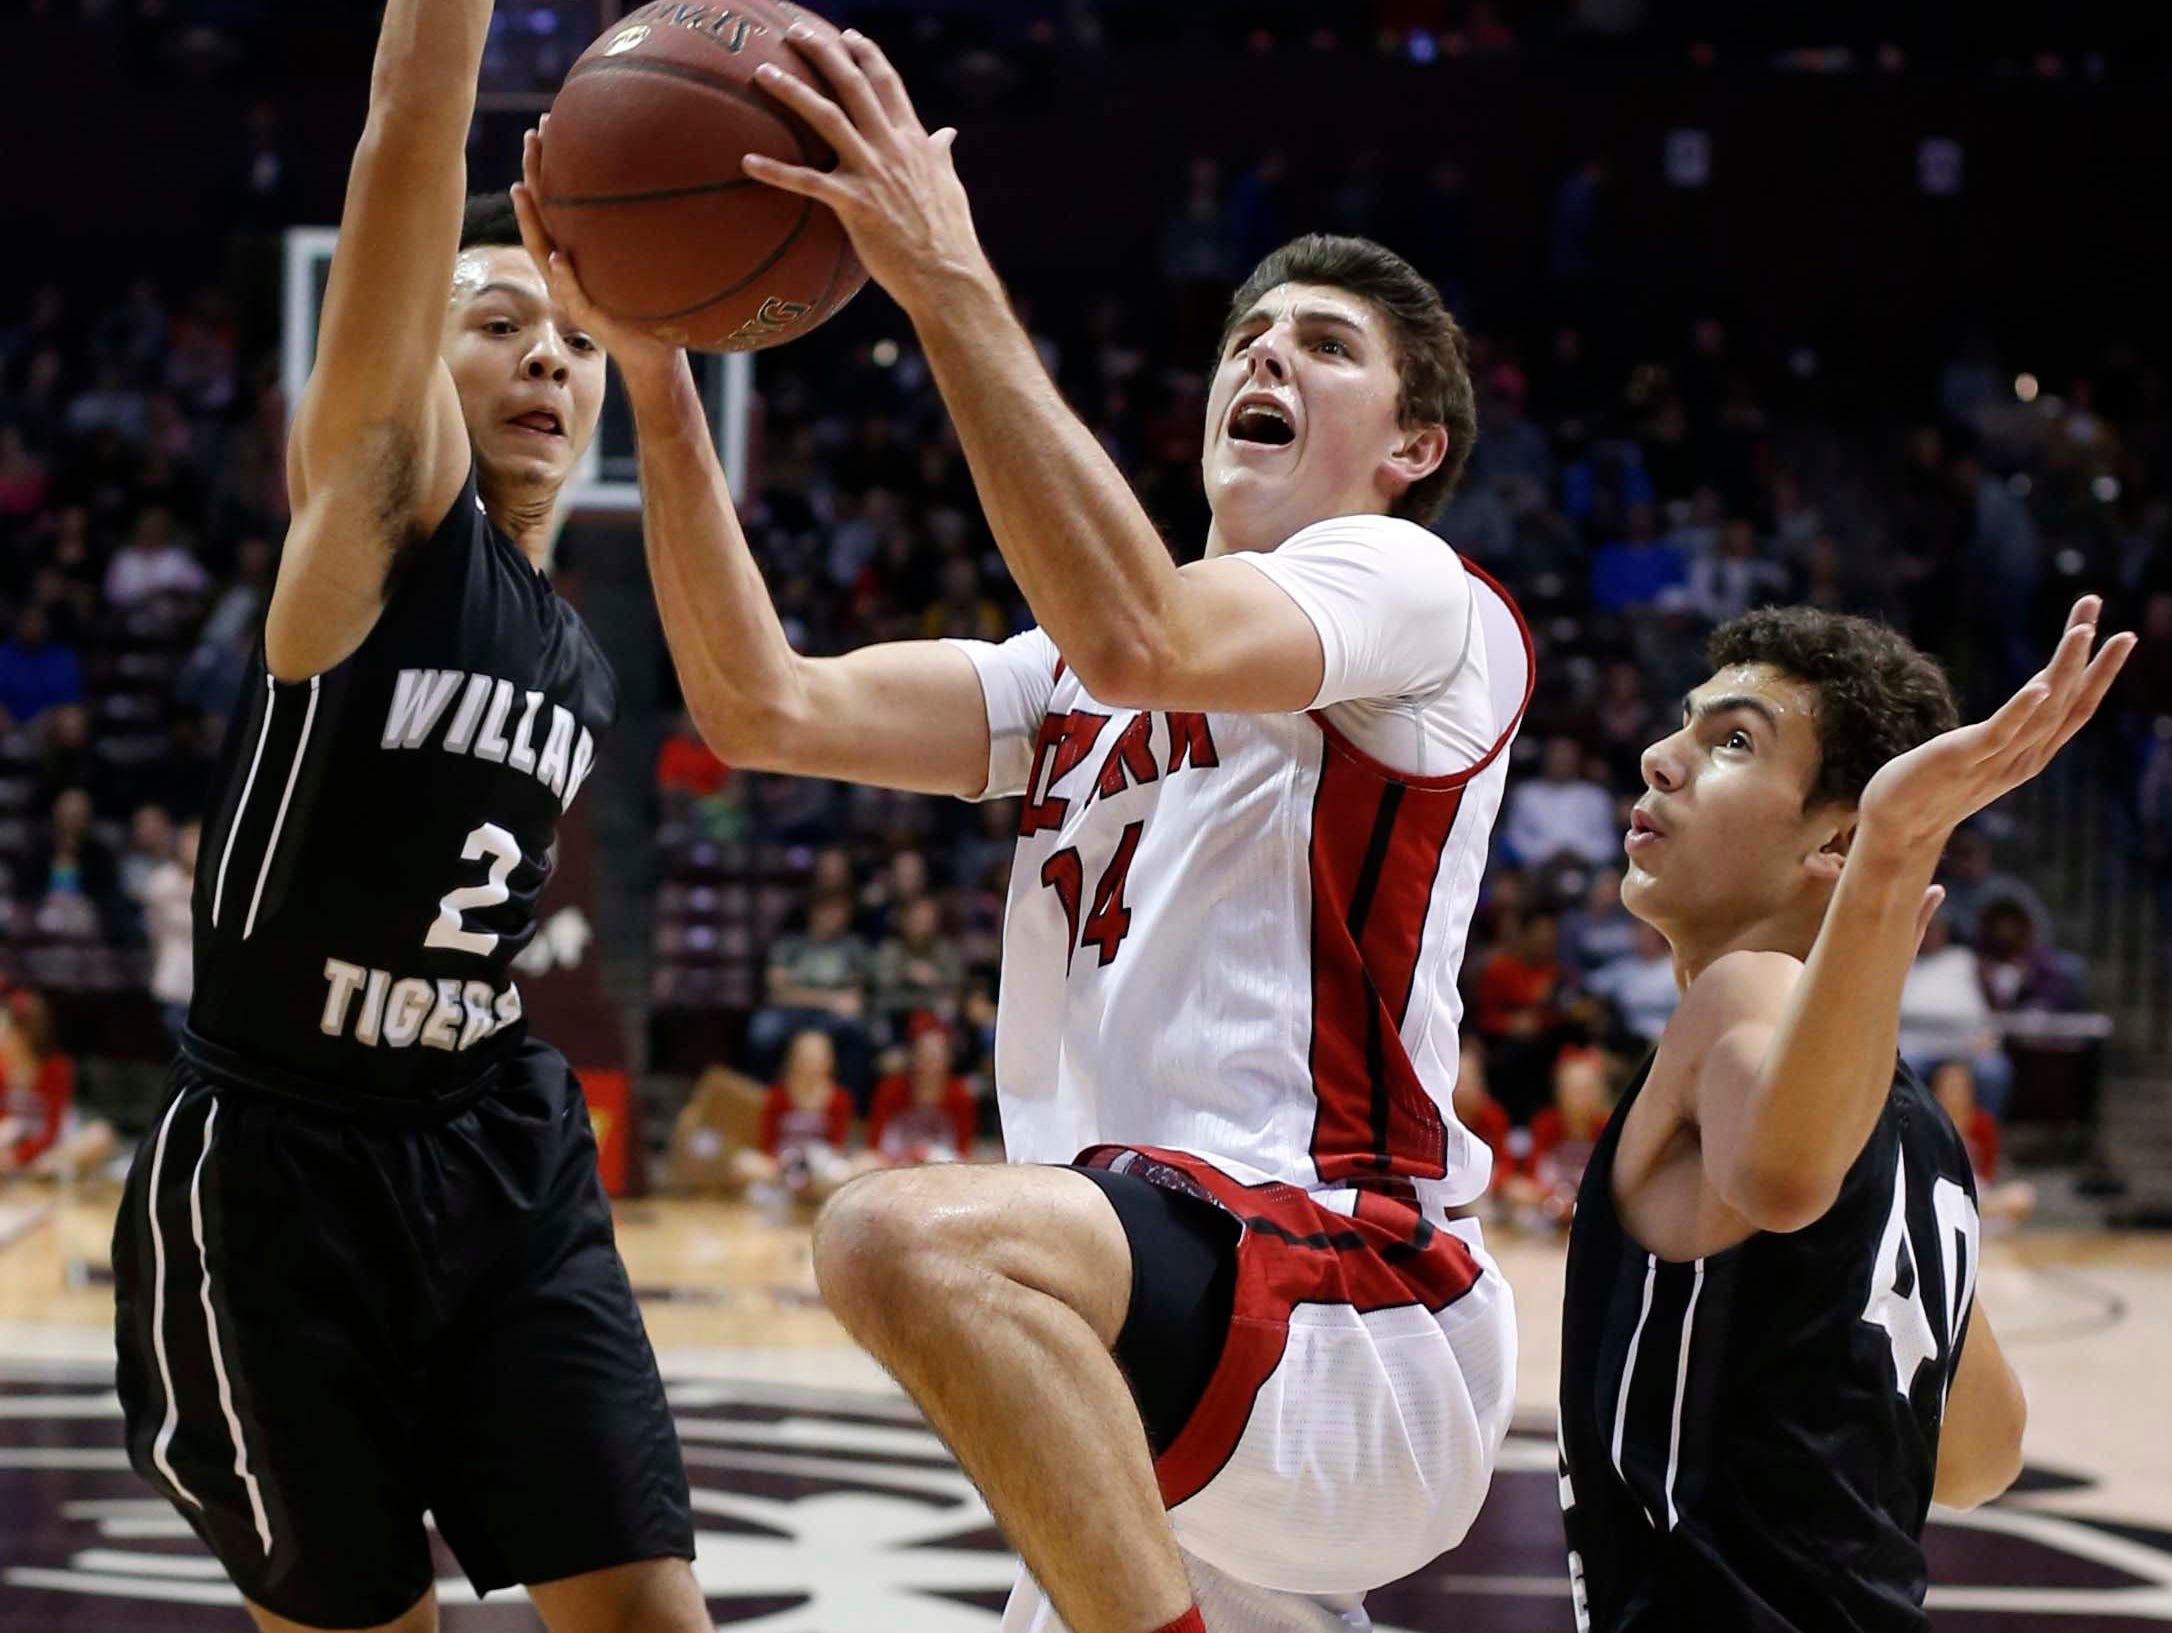 Ozark's Parker Hanks looks to score against Willard in the Gold division final at JQH Arena on December 29, 2016.